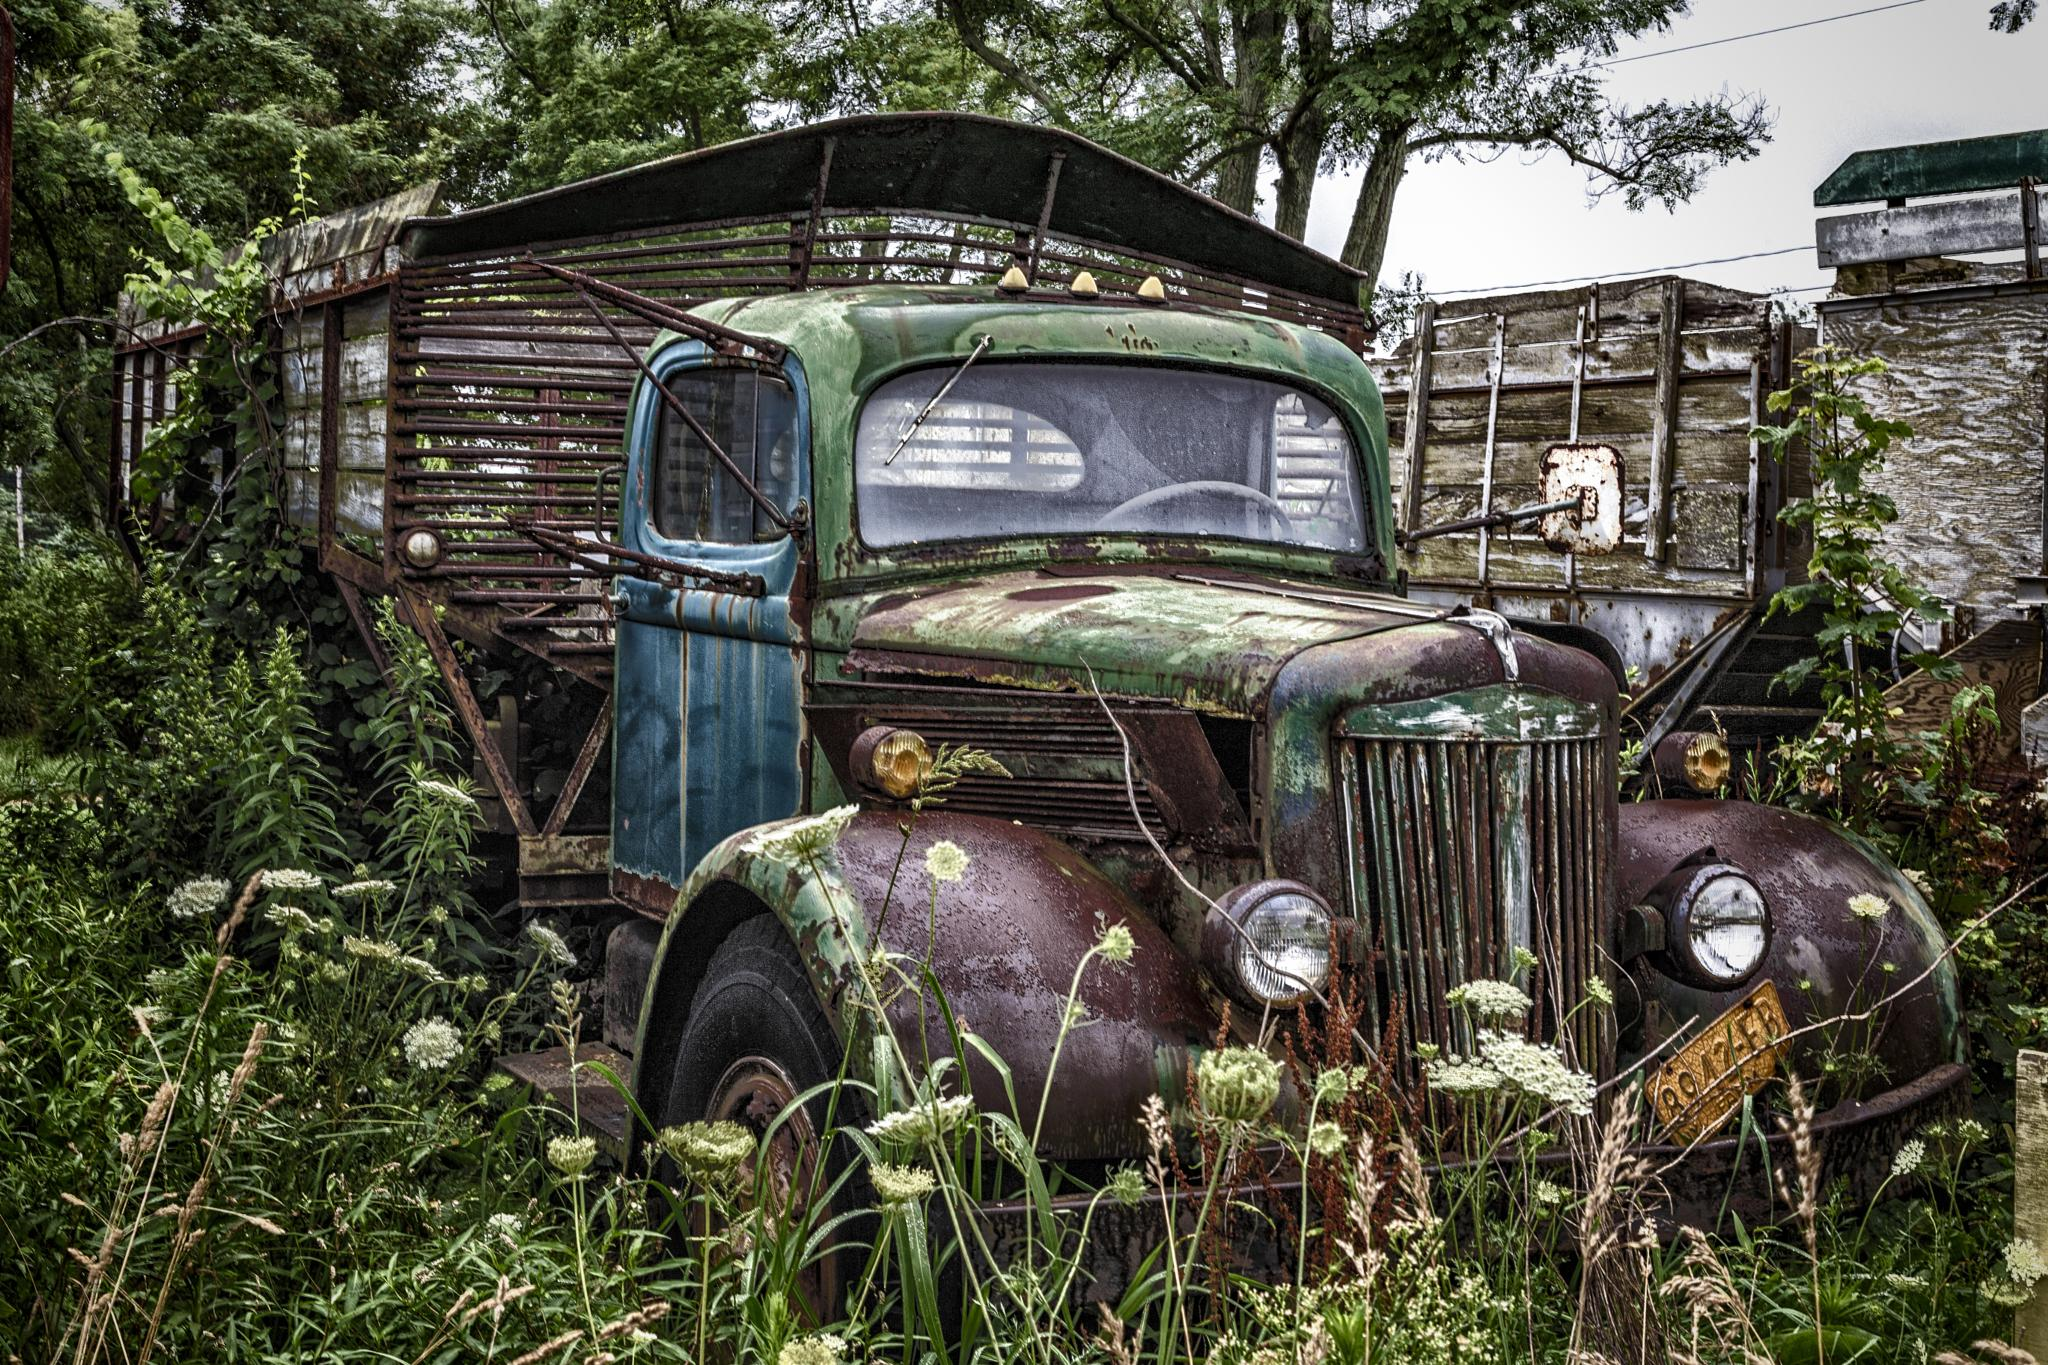 This old Truck by Dominick Chiuchiolo